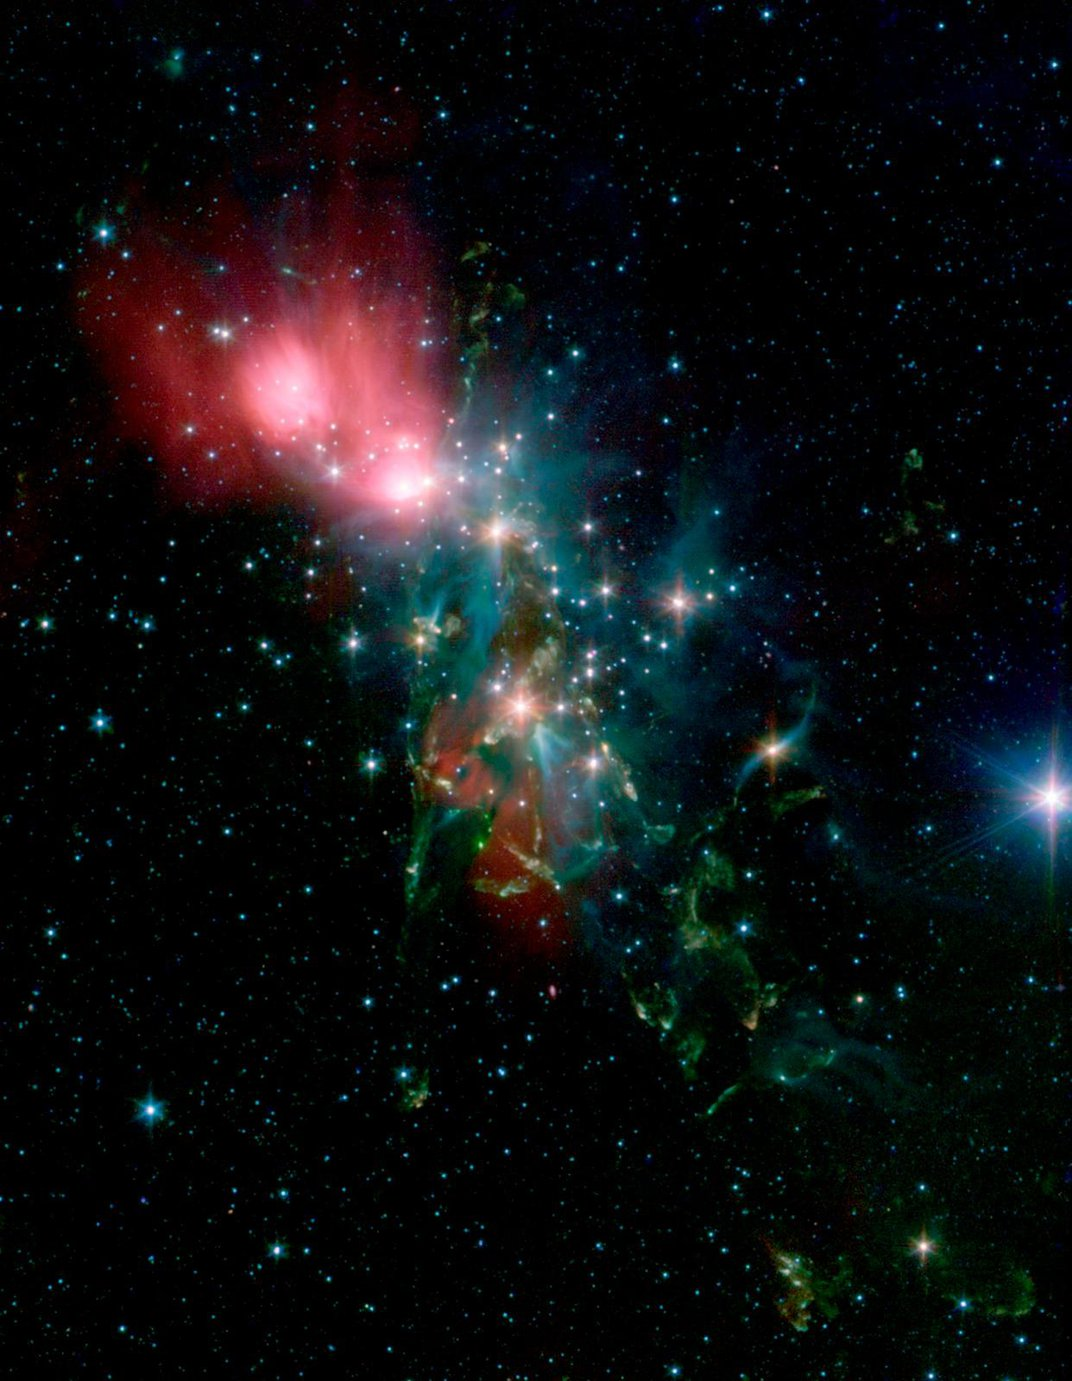 Spitzer Space Telescope Ends Operations After Scanning the Cosmos for 16 Years